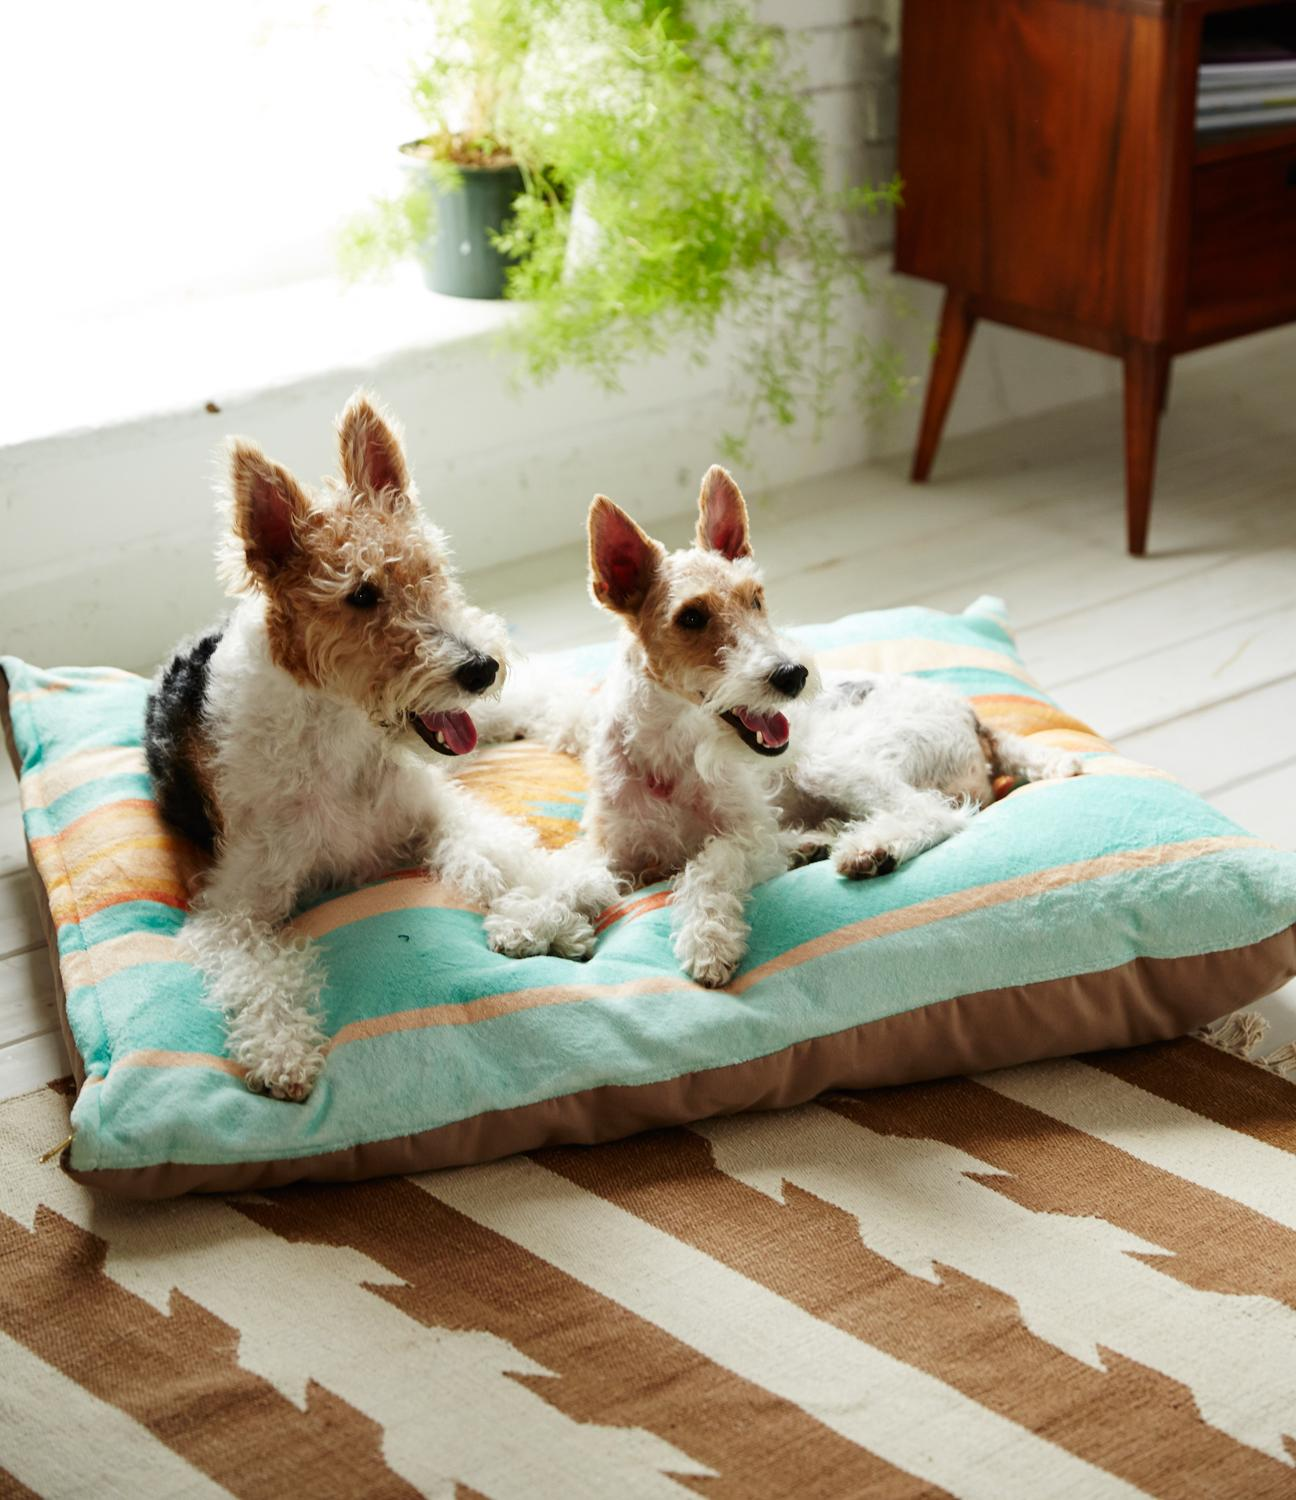 Plot twist: cute dog beds do exist! http://t.co/t3PHRPsXr8 http://t.co/rRWZIWqI93